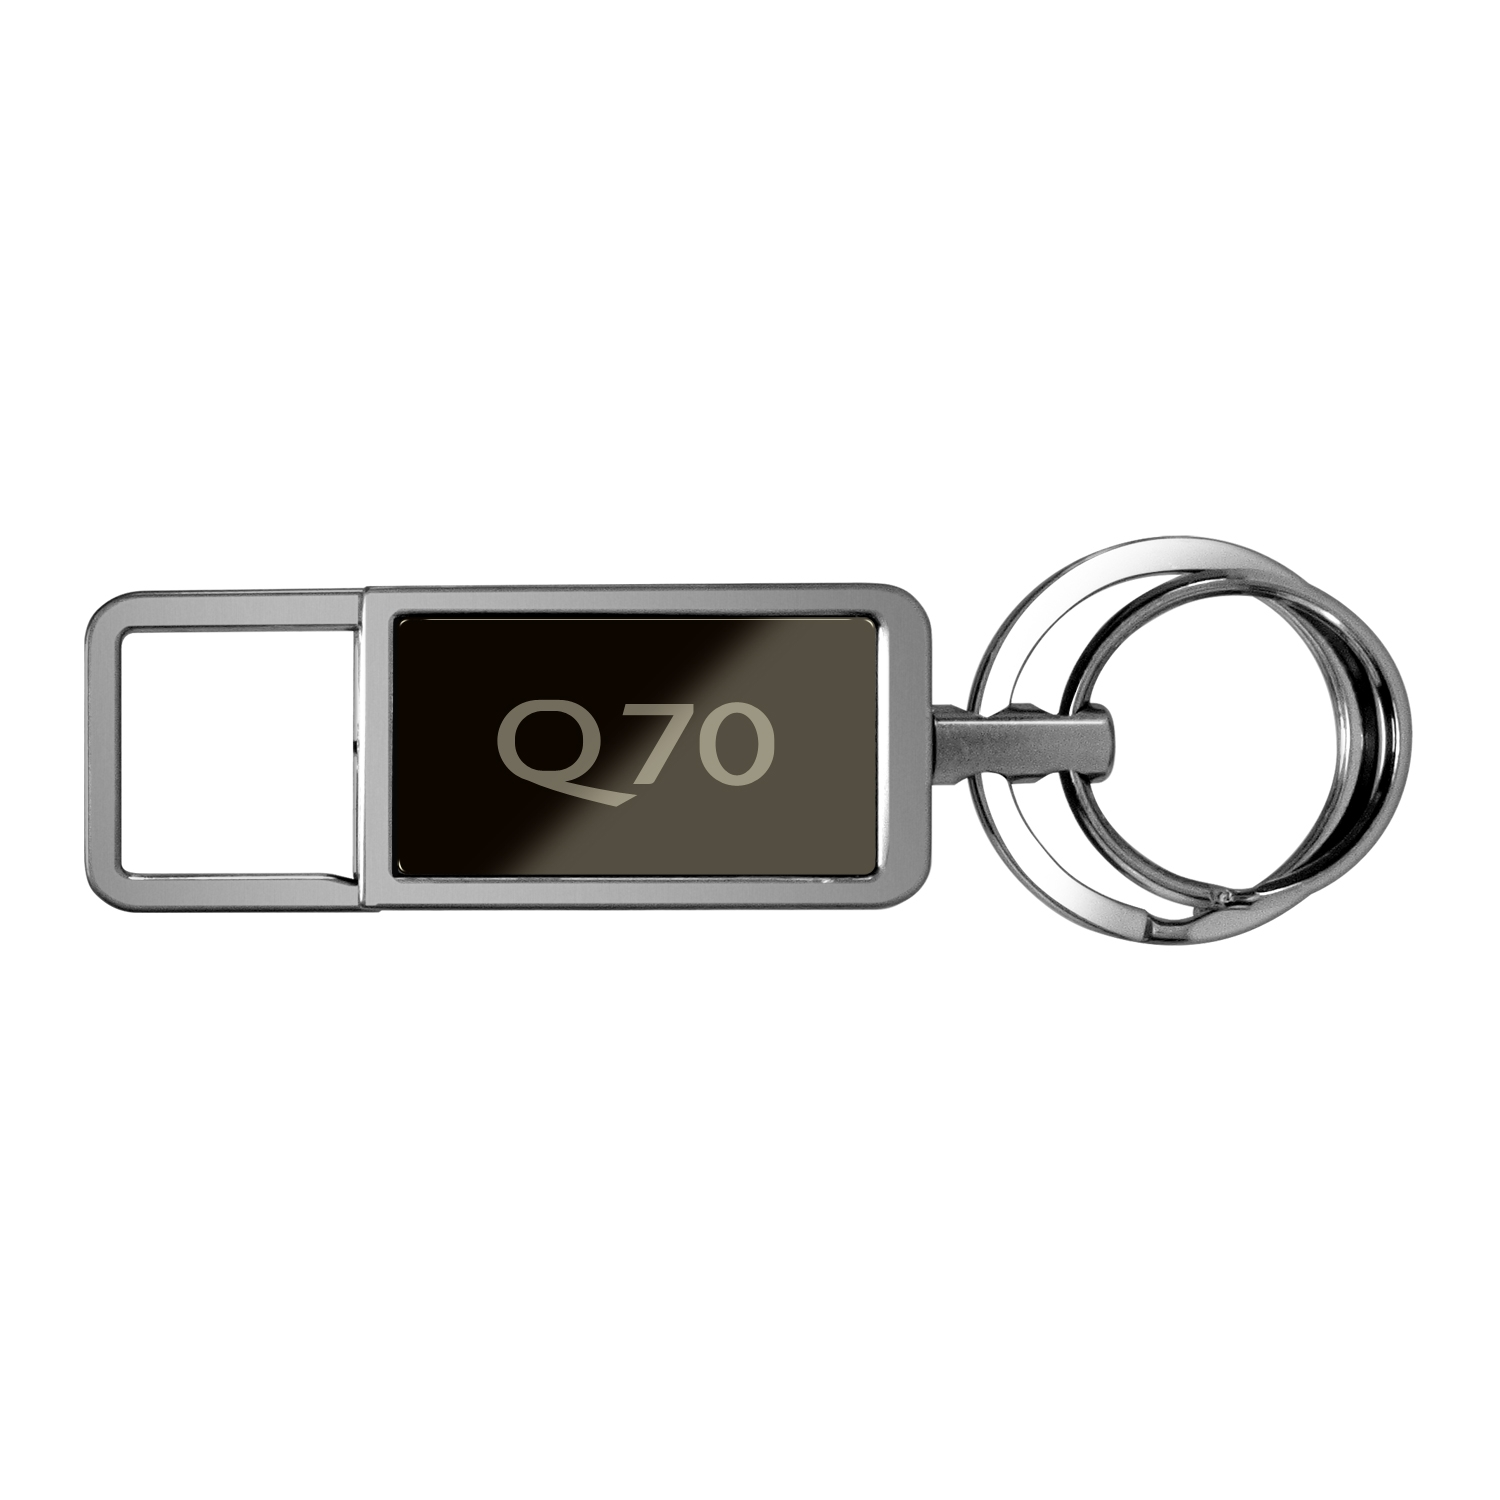 Infiniti Q70 Black Pull Top Rectangular Metal Key Chain